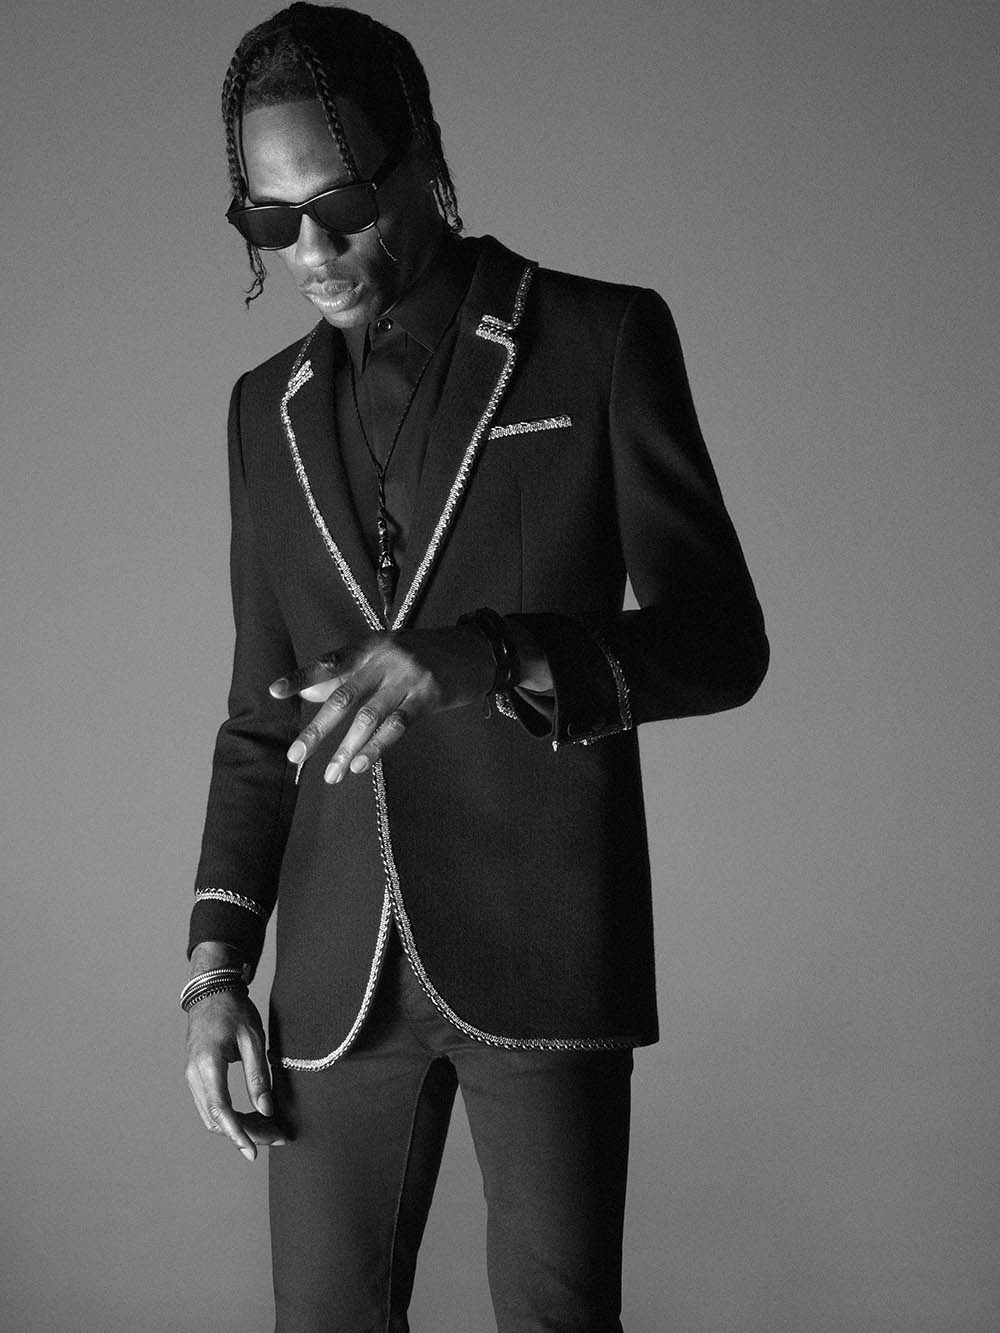 Saint Laurent Men's Spring Summer 2019 Campaign with Travis Scott